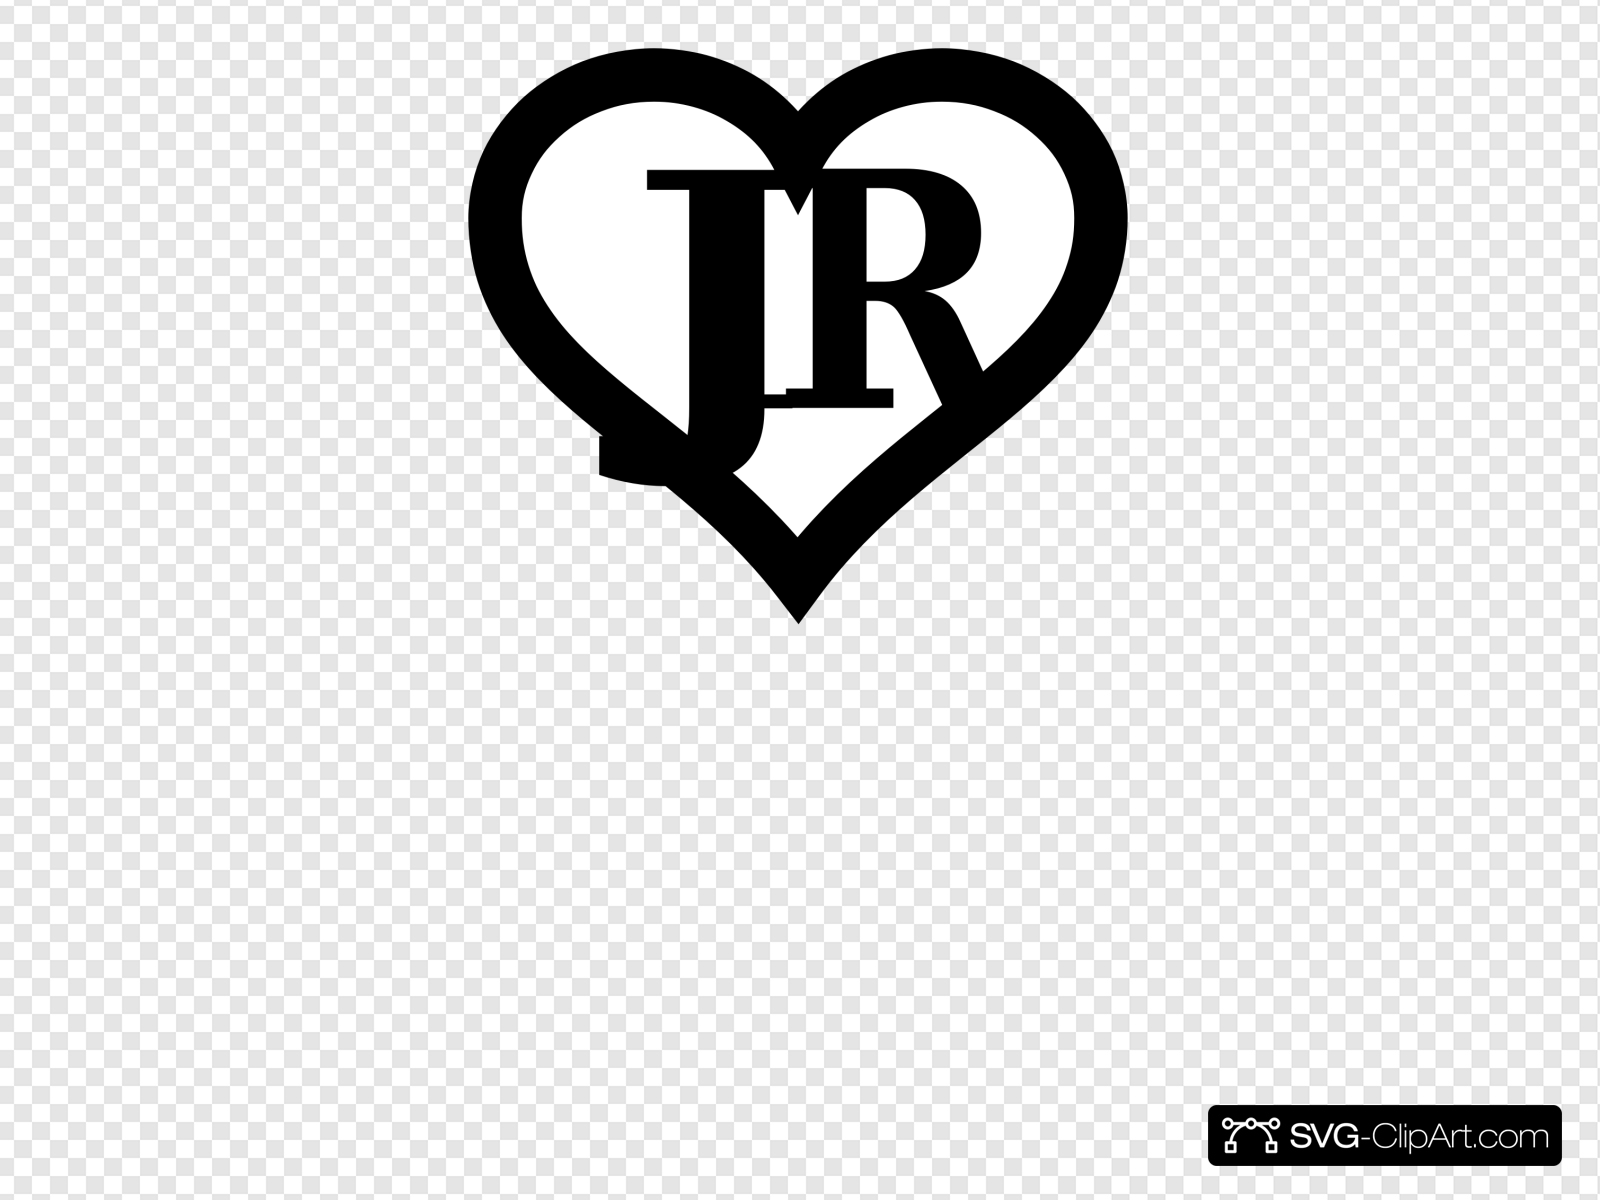 Jr clipart graphic Heart Outline Initials Jr Clip art, Icon and SVG - SVG Clipart graphic